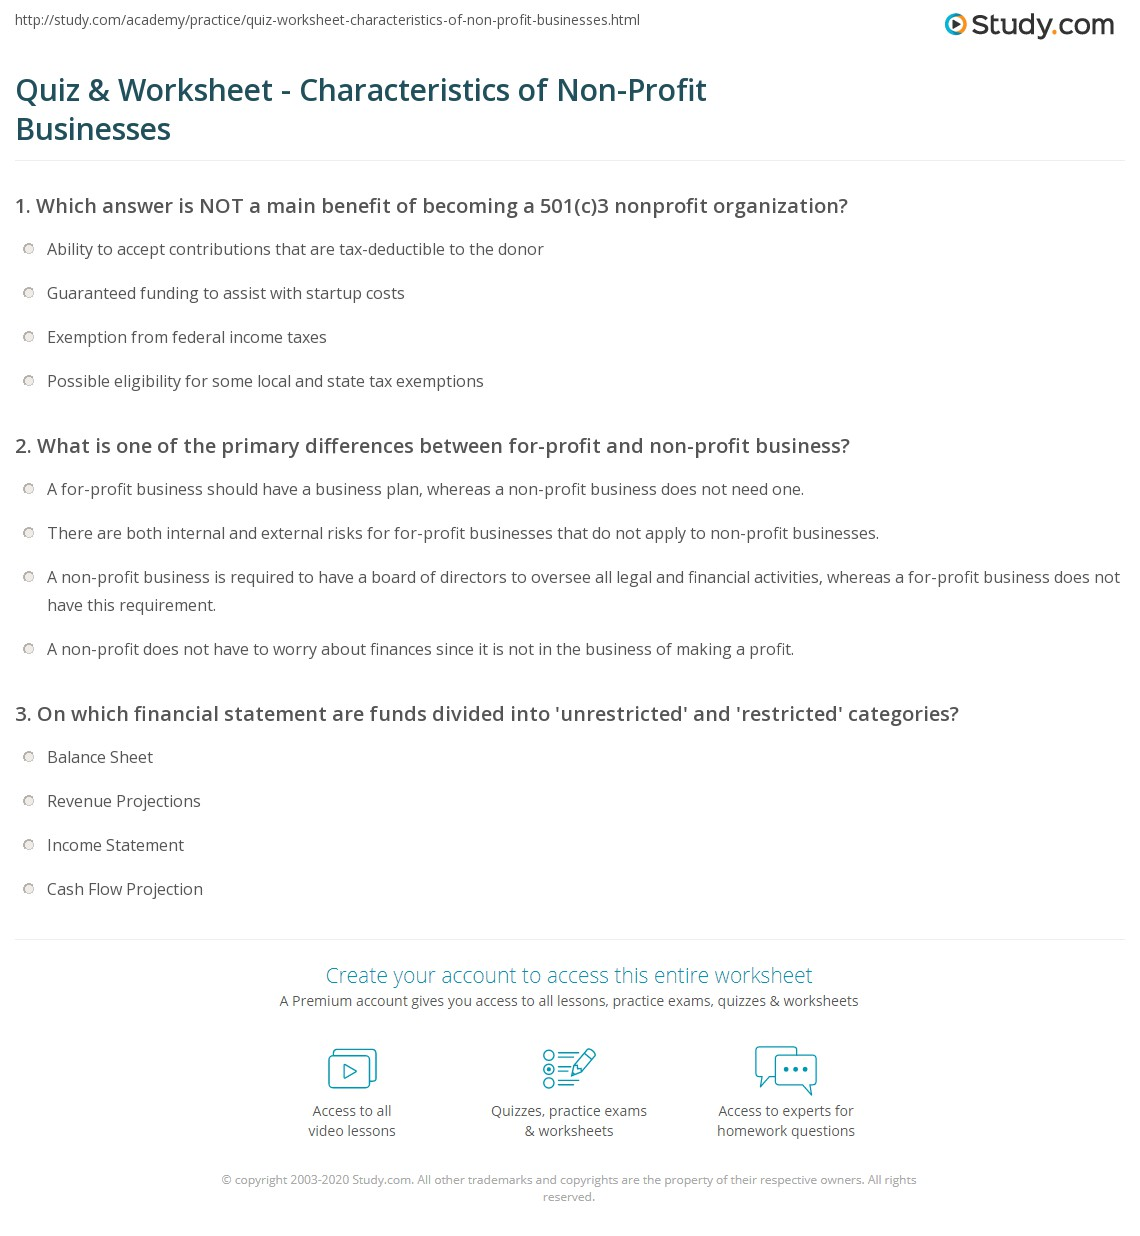 quiz & worksheet - characteristics of non-profit businesses | study